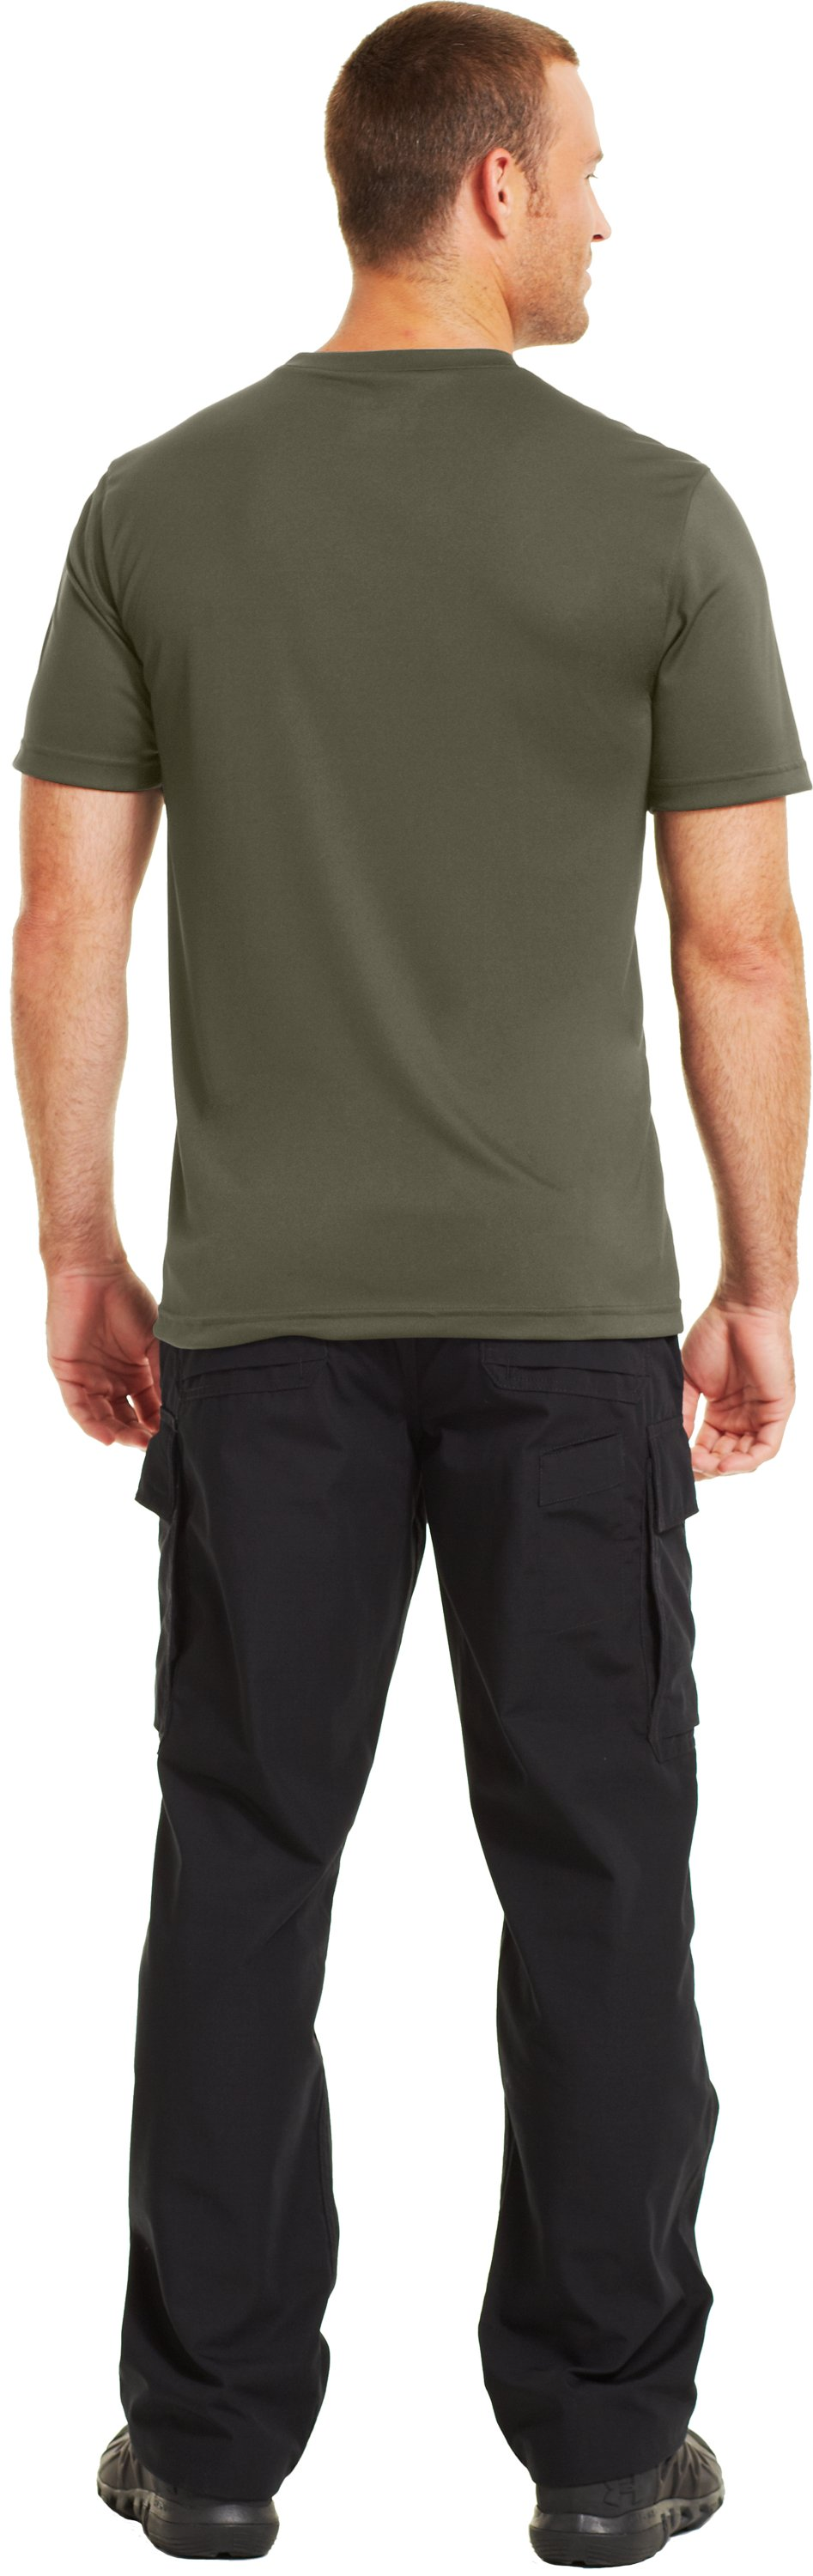 Men's HeatGear® Tactical Short Sleeve T-Shirt, Marine OD Green, Back